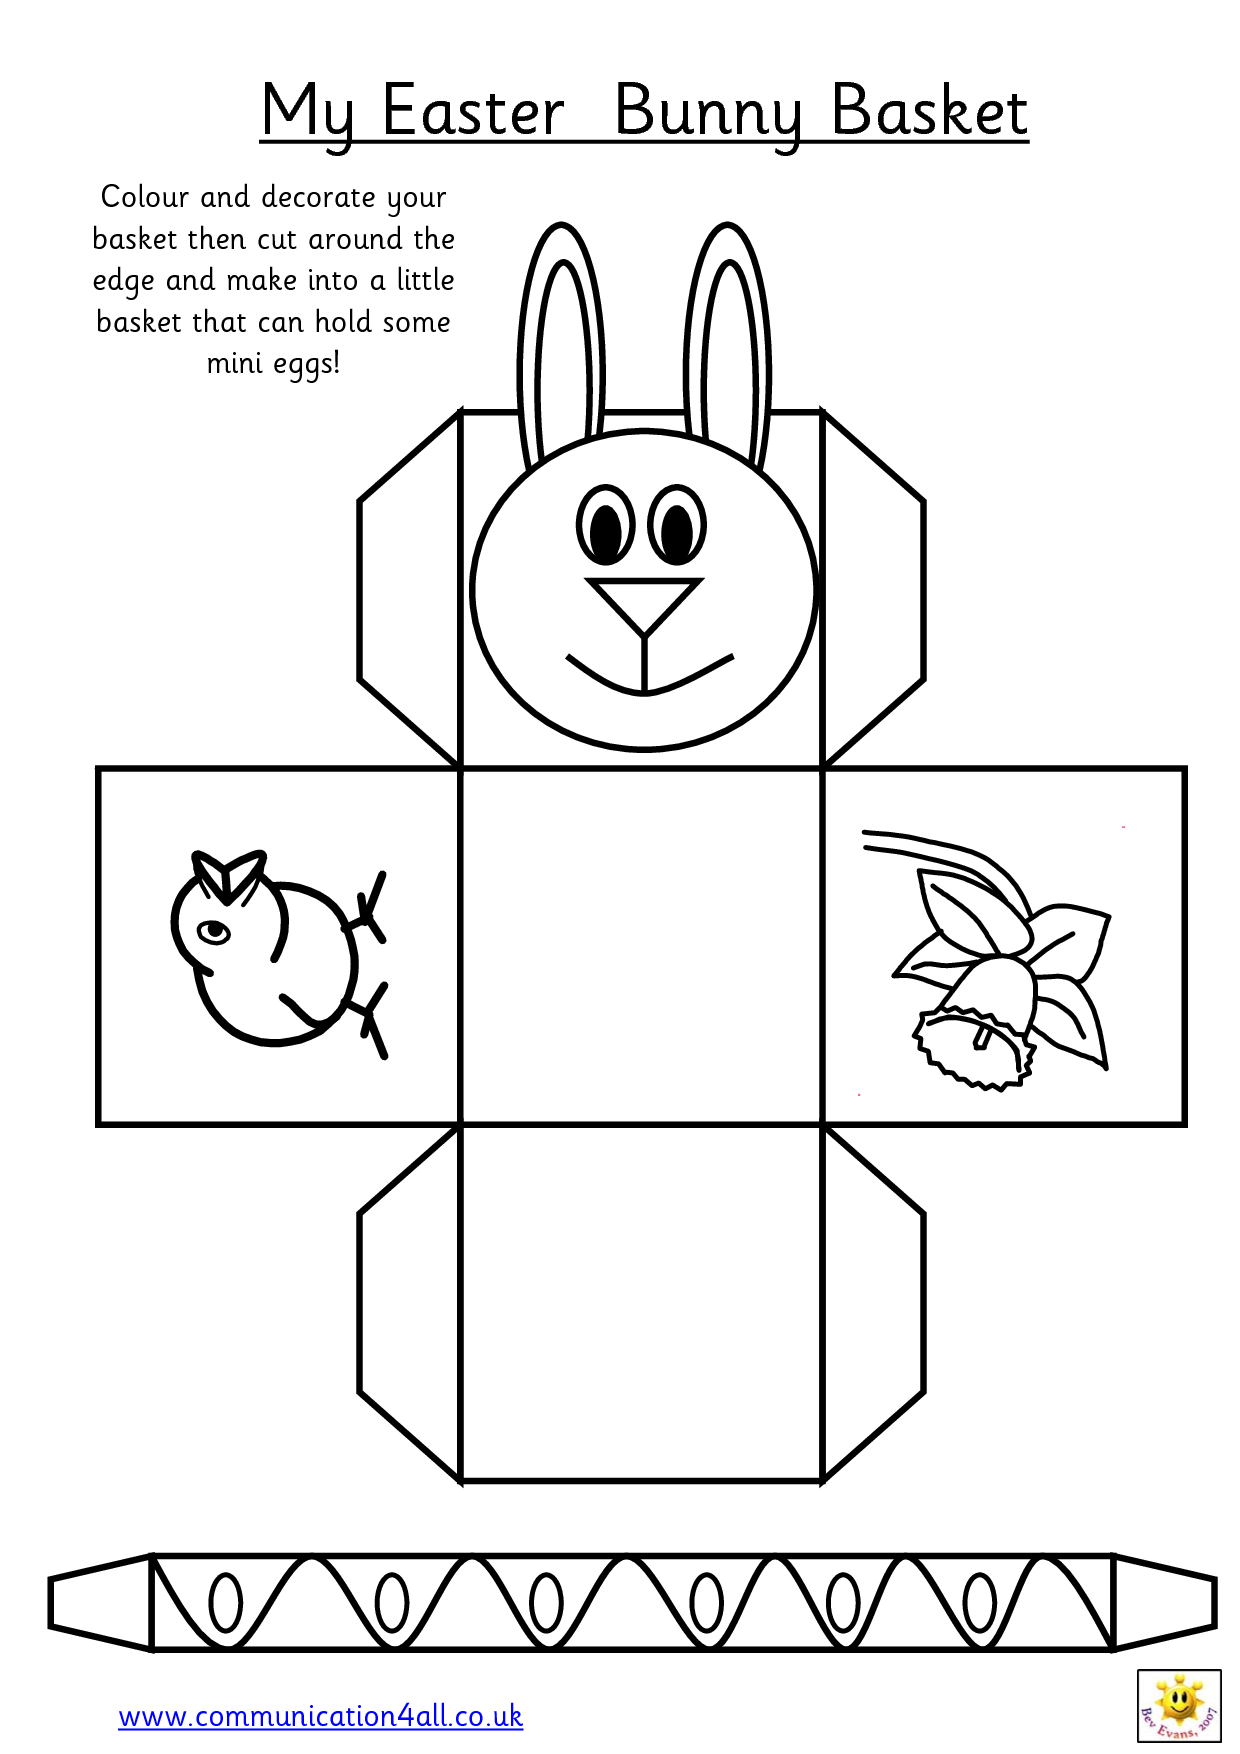 Pin By Joyce Enos On Crafts Easter Basket Template Printable Easter Activities Easter Basket Printable